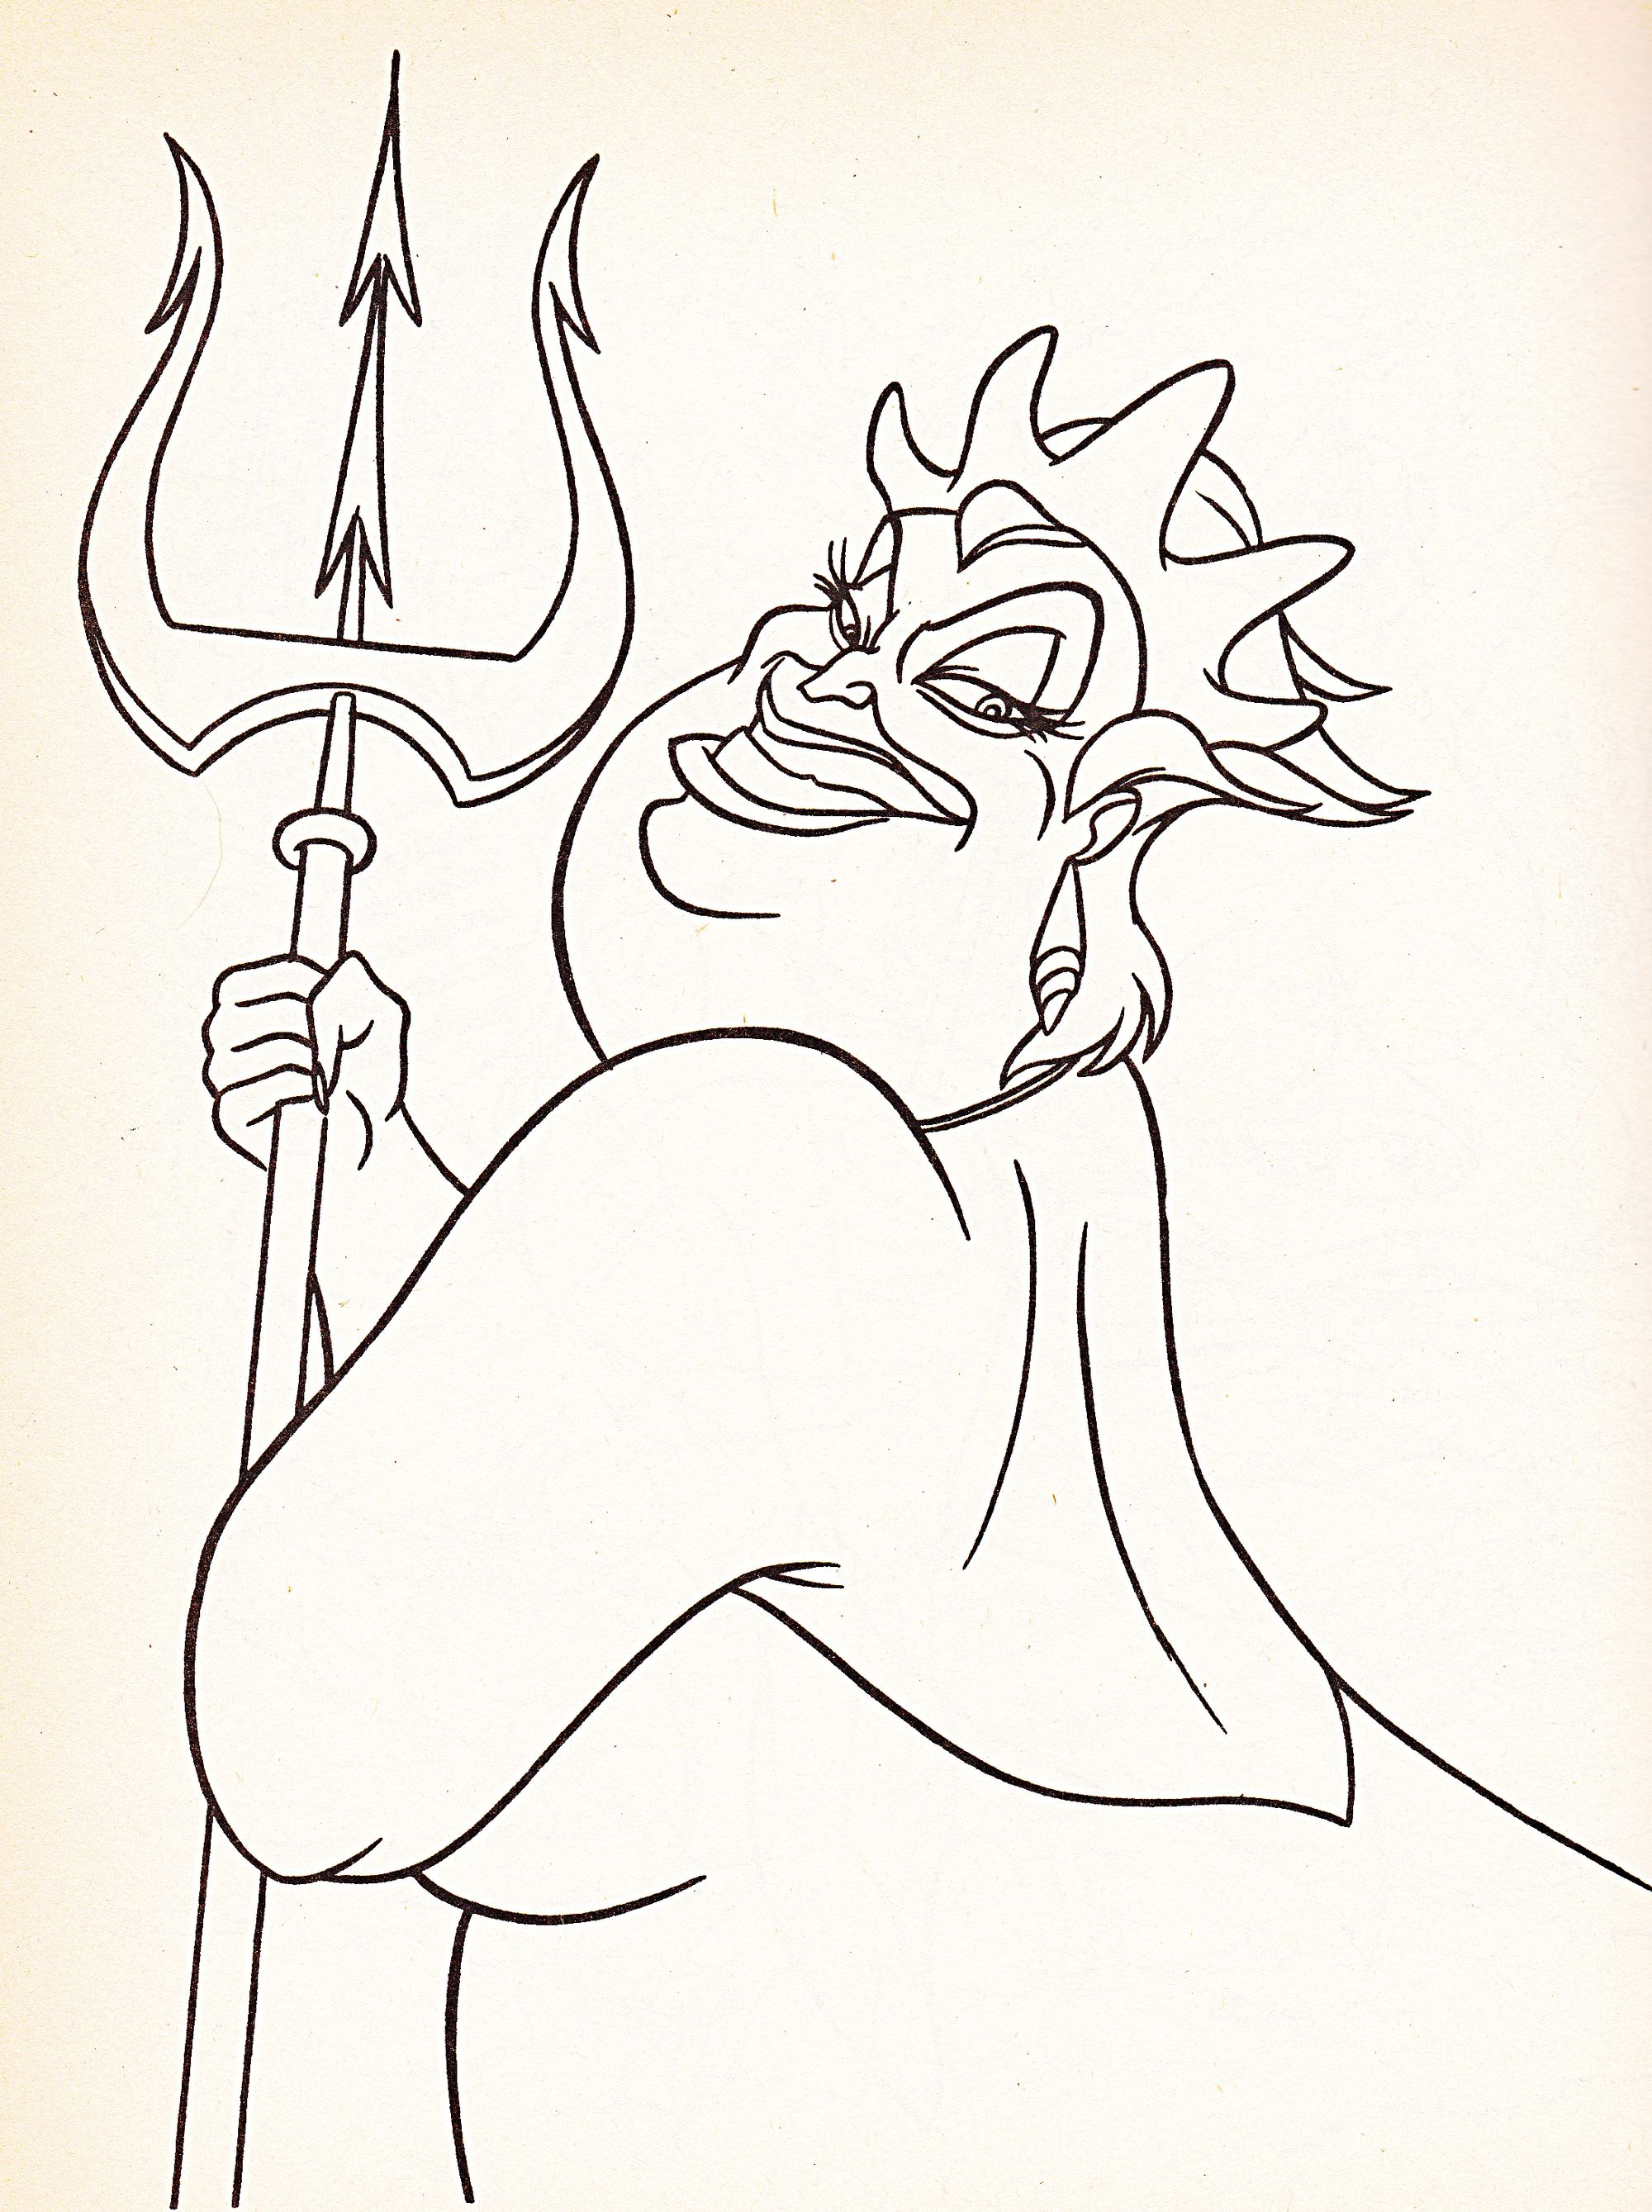 2000x2678 Ursula Coloring Pages Sharry Ursula Coloring Page World Coloring